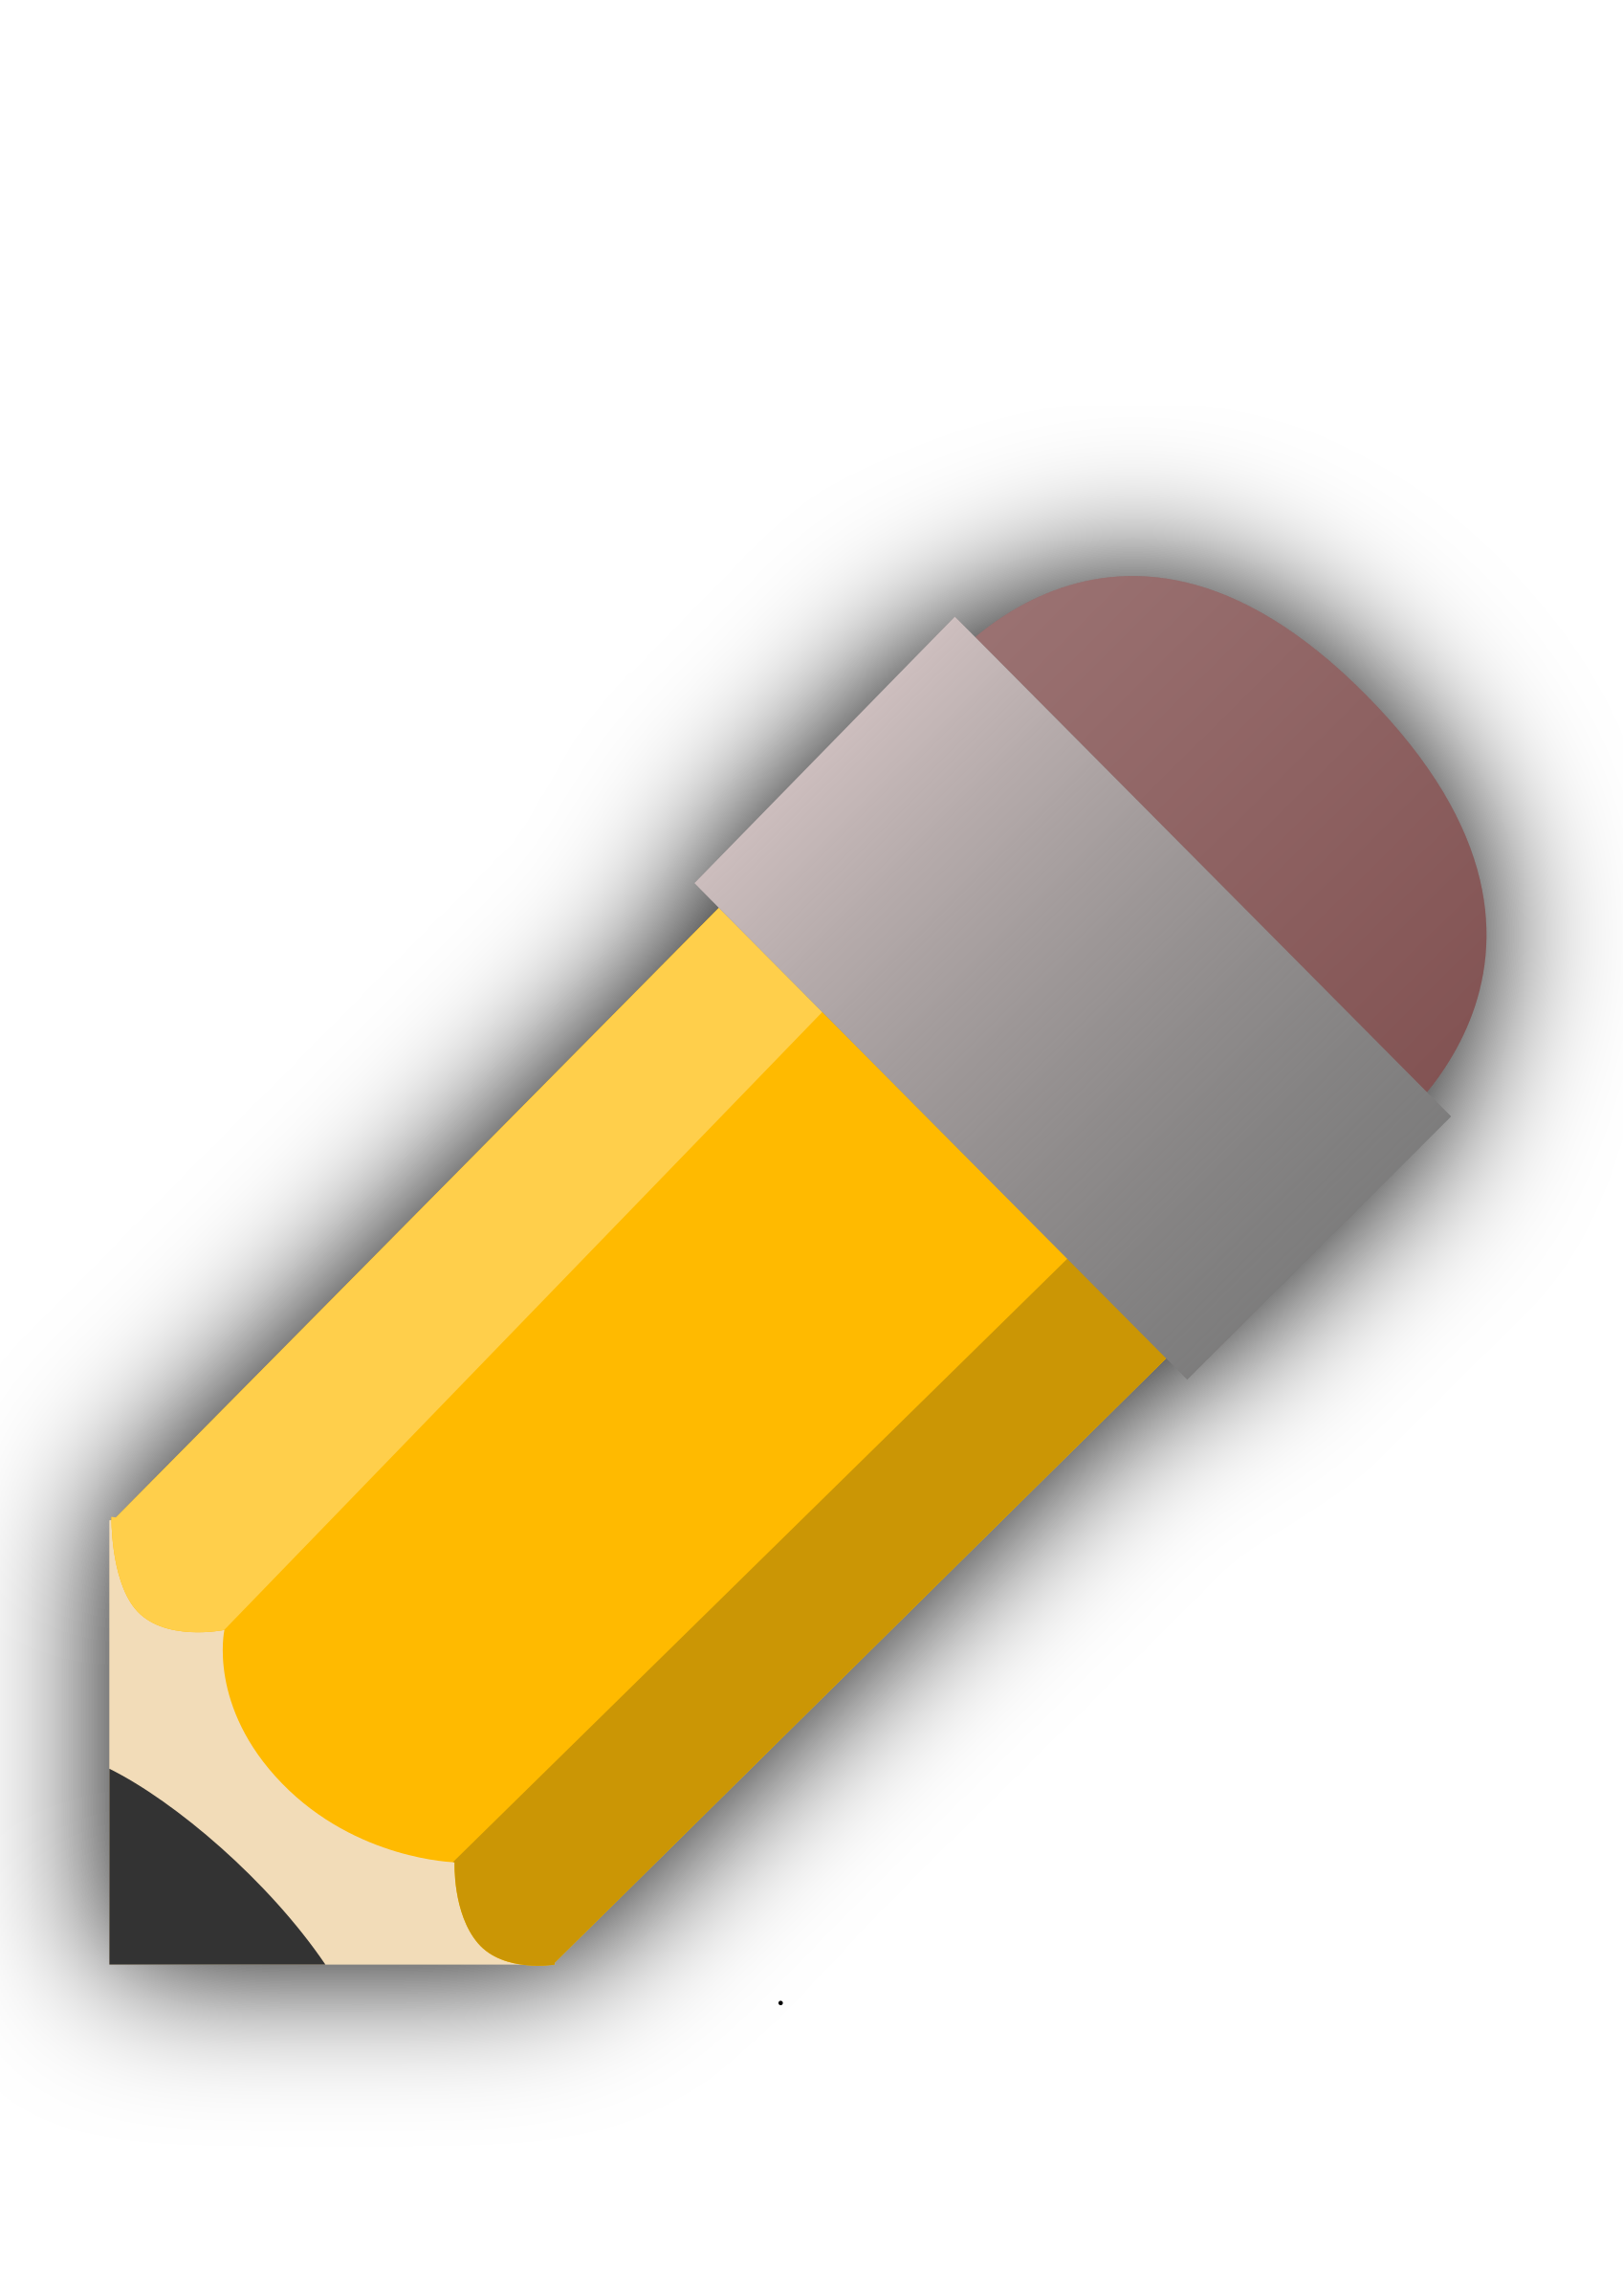 Edit pencil icon by darth_schmoo